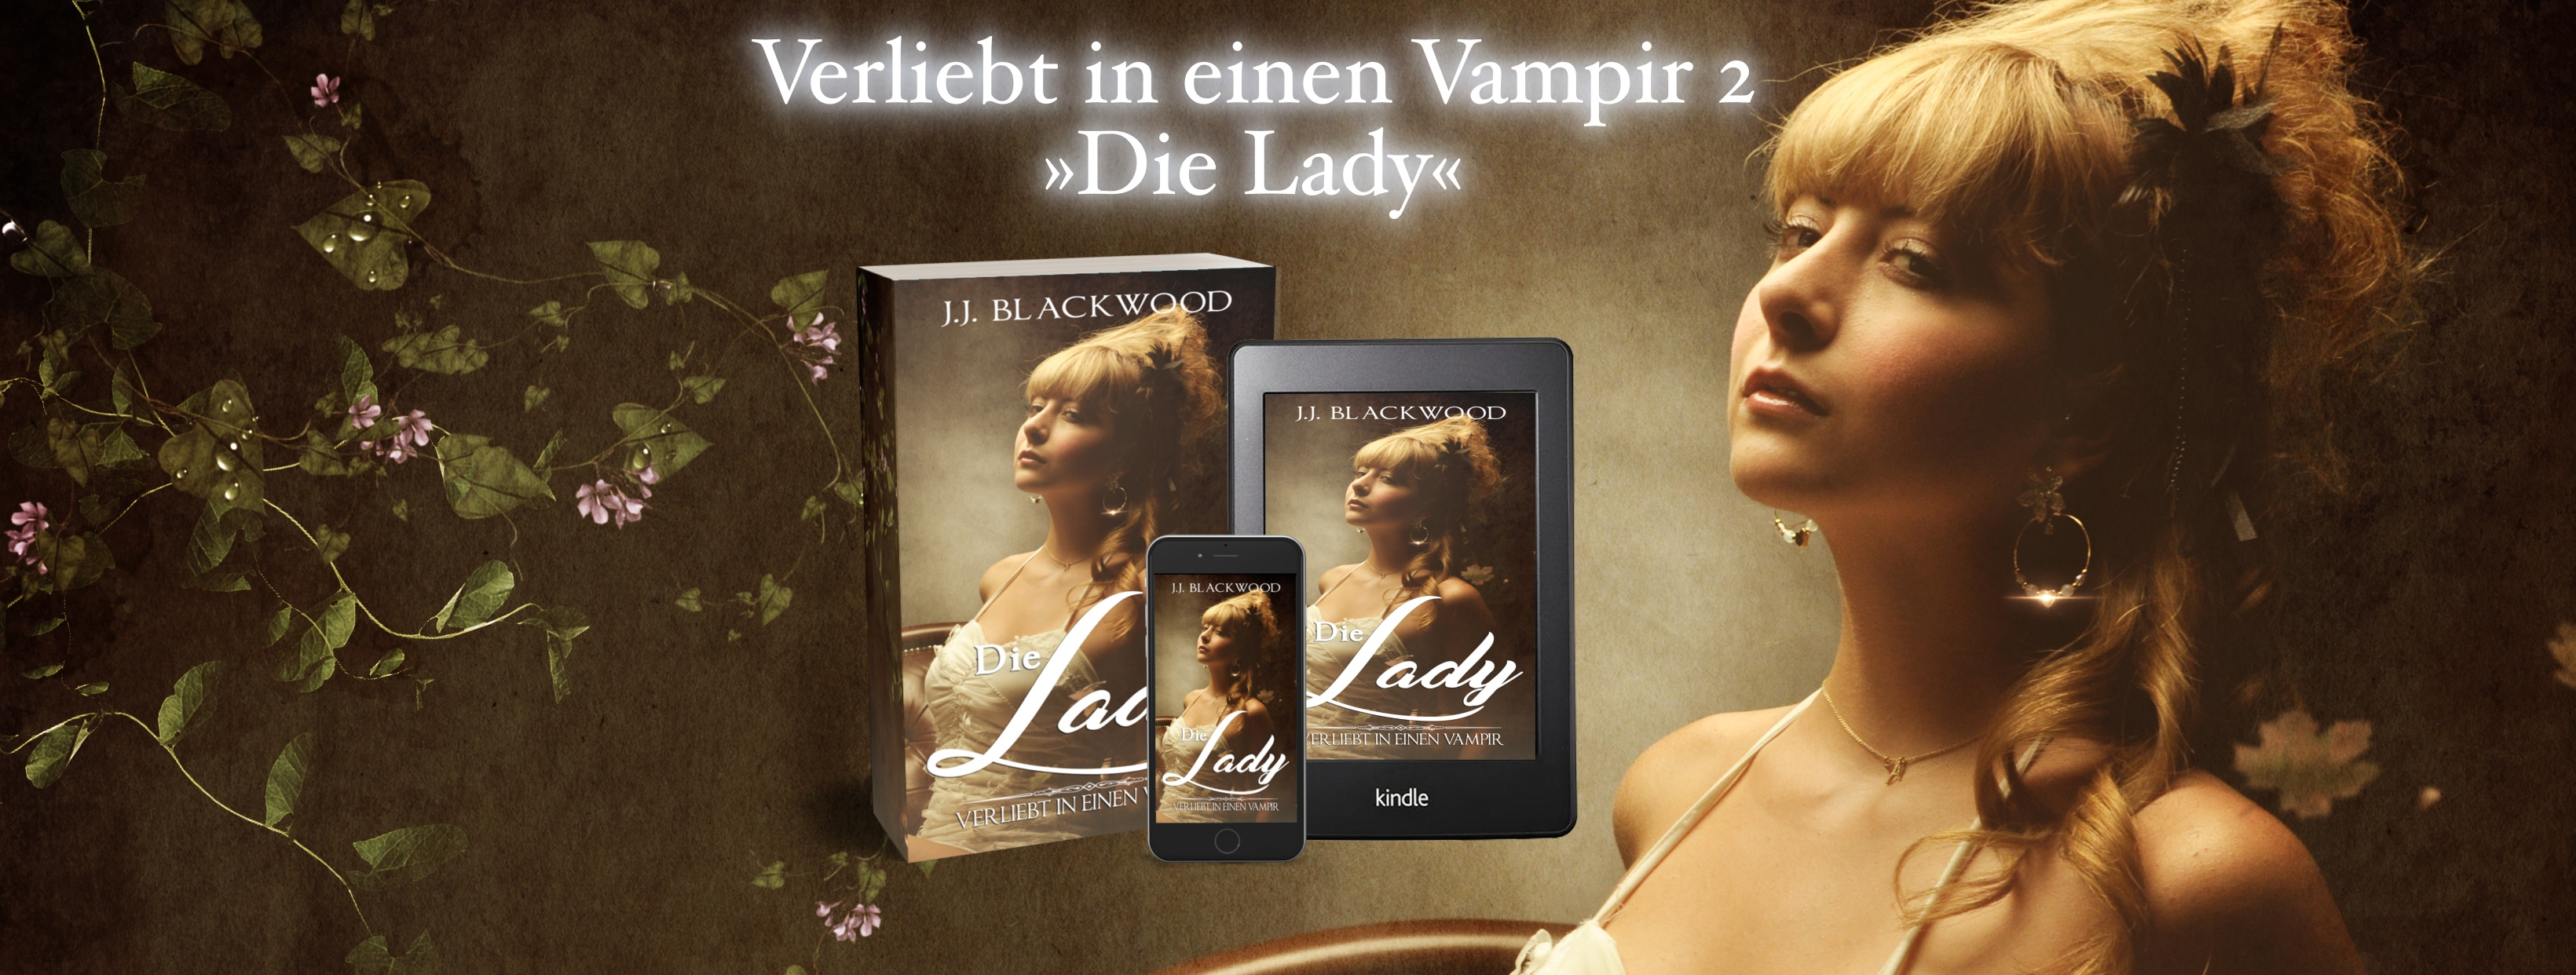 Die Lady FB Banner neutral